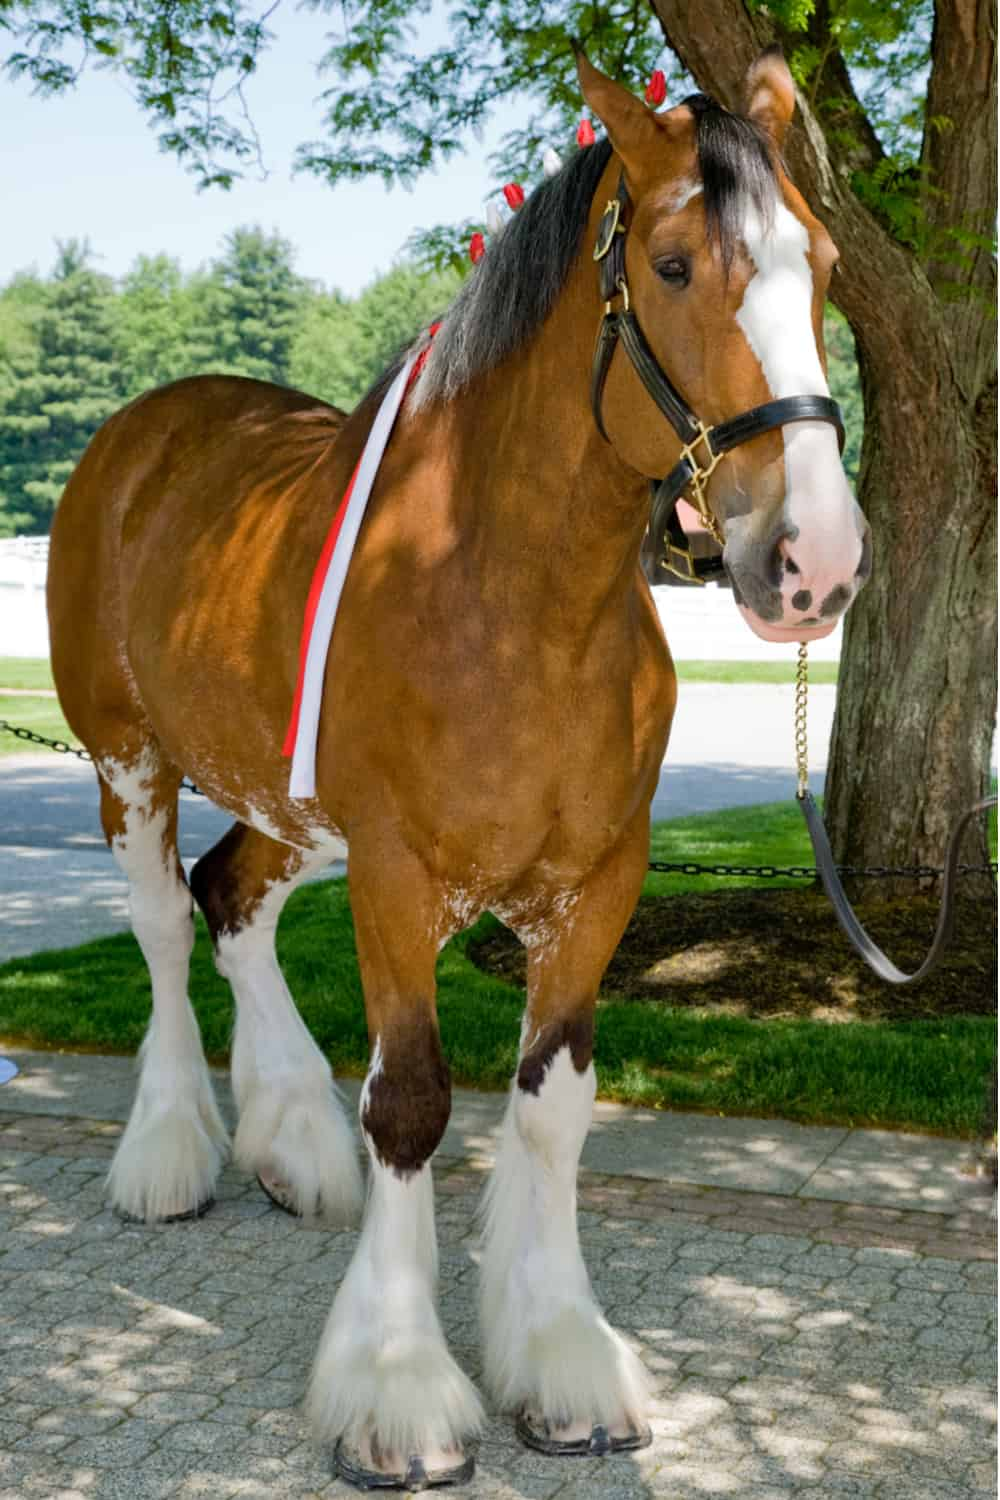 Distinct features of a Clydesdale horse